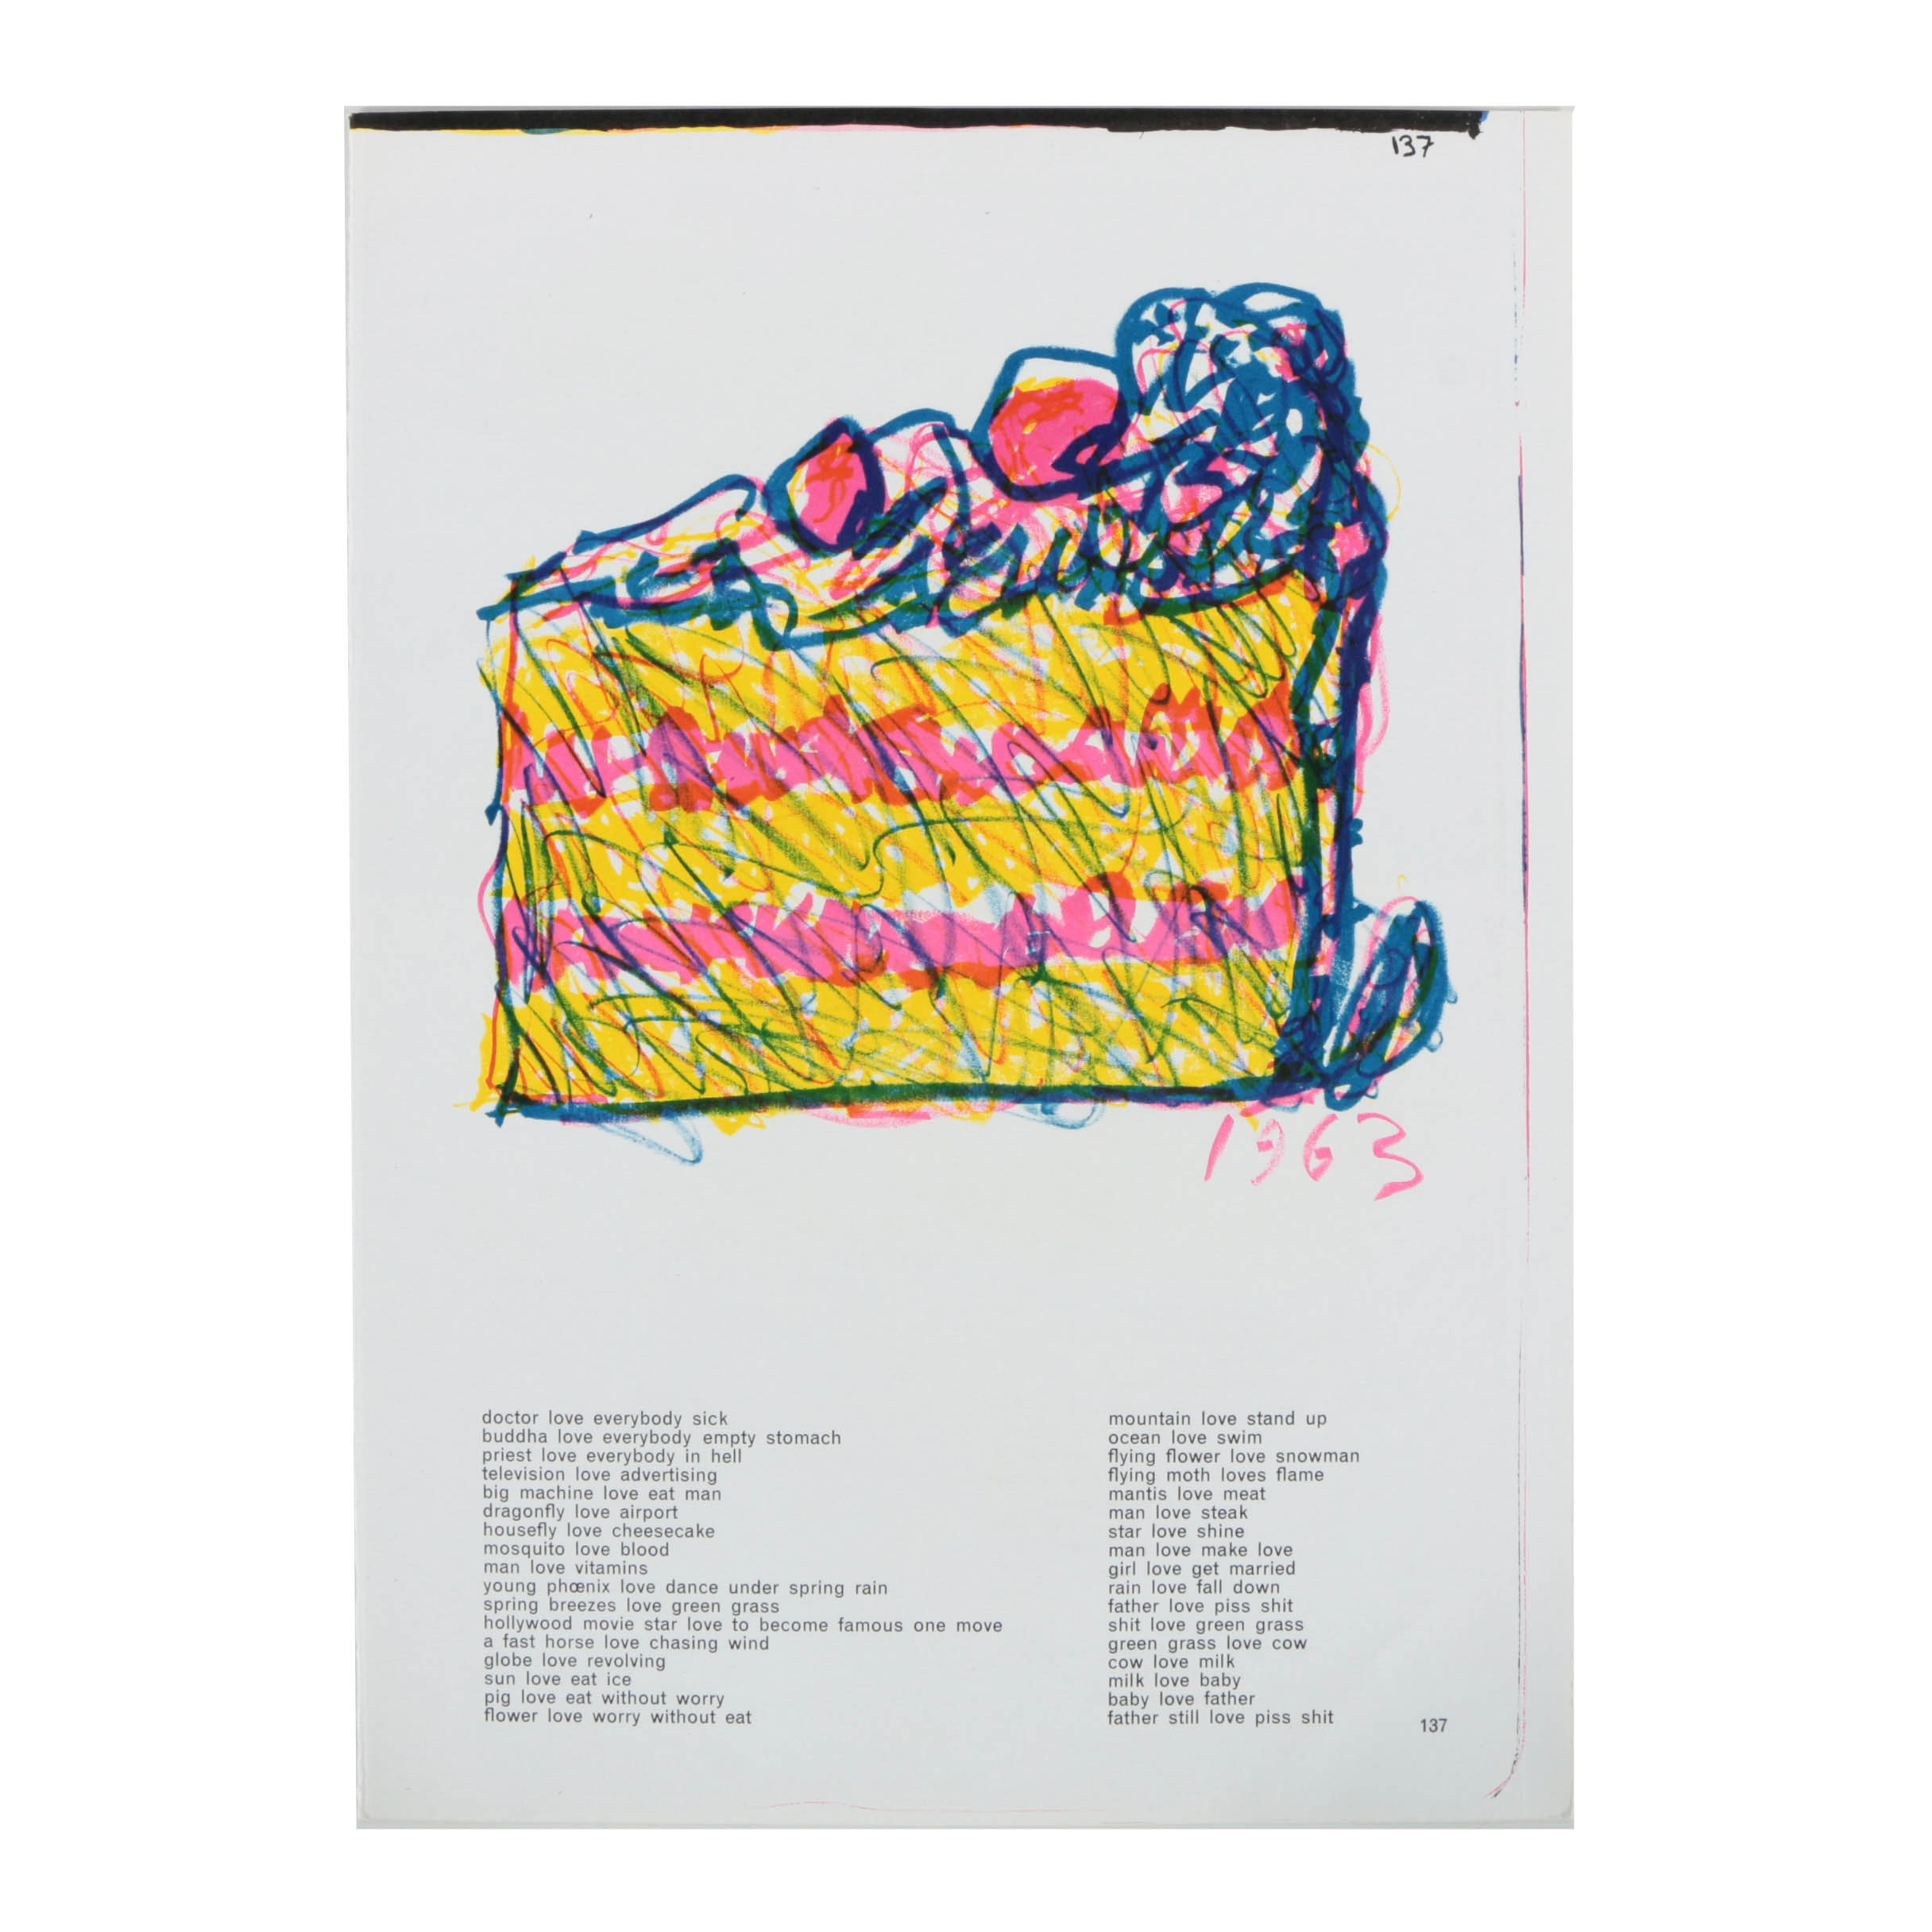 """Claes Oldenburg Lithograph on Paper """"Slice of Cake"""" from """"One Center Life"""""""